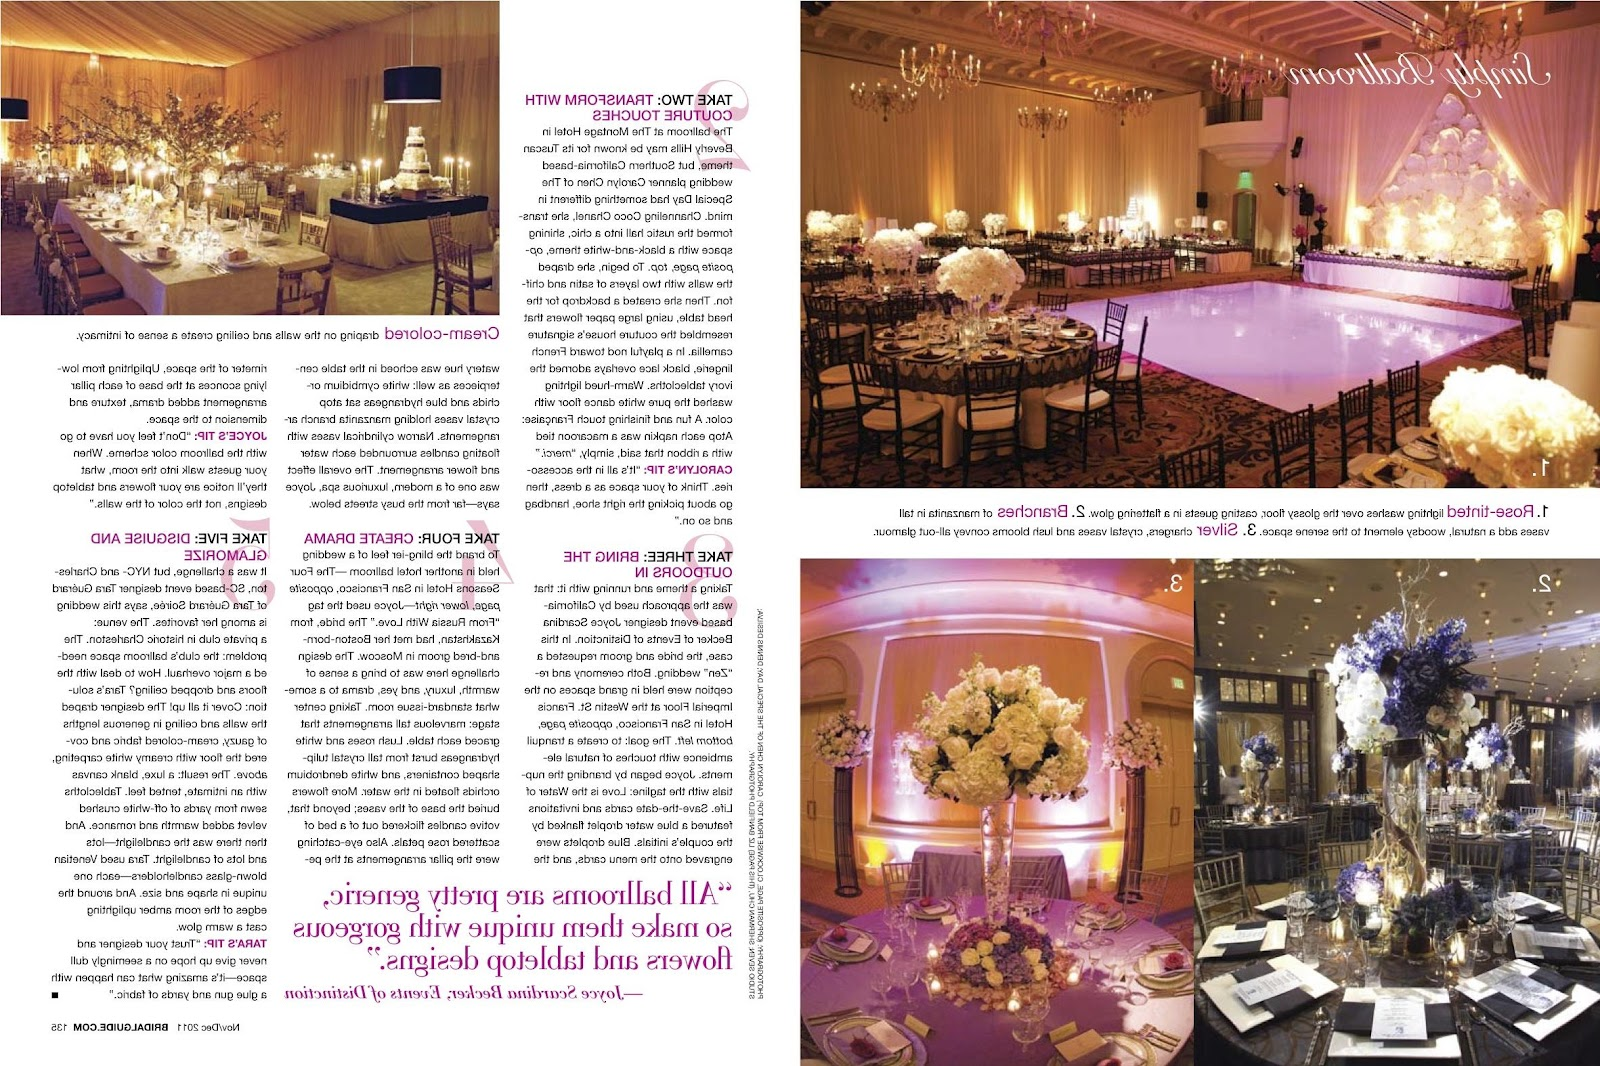 BRIDAL GUIDE MAGAZINE Feature: